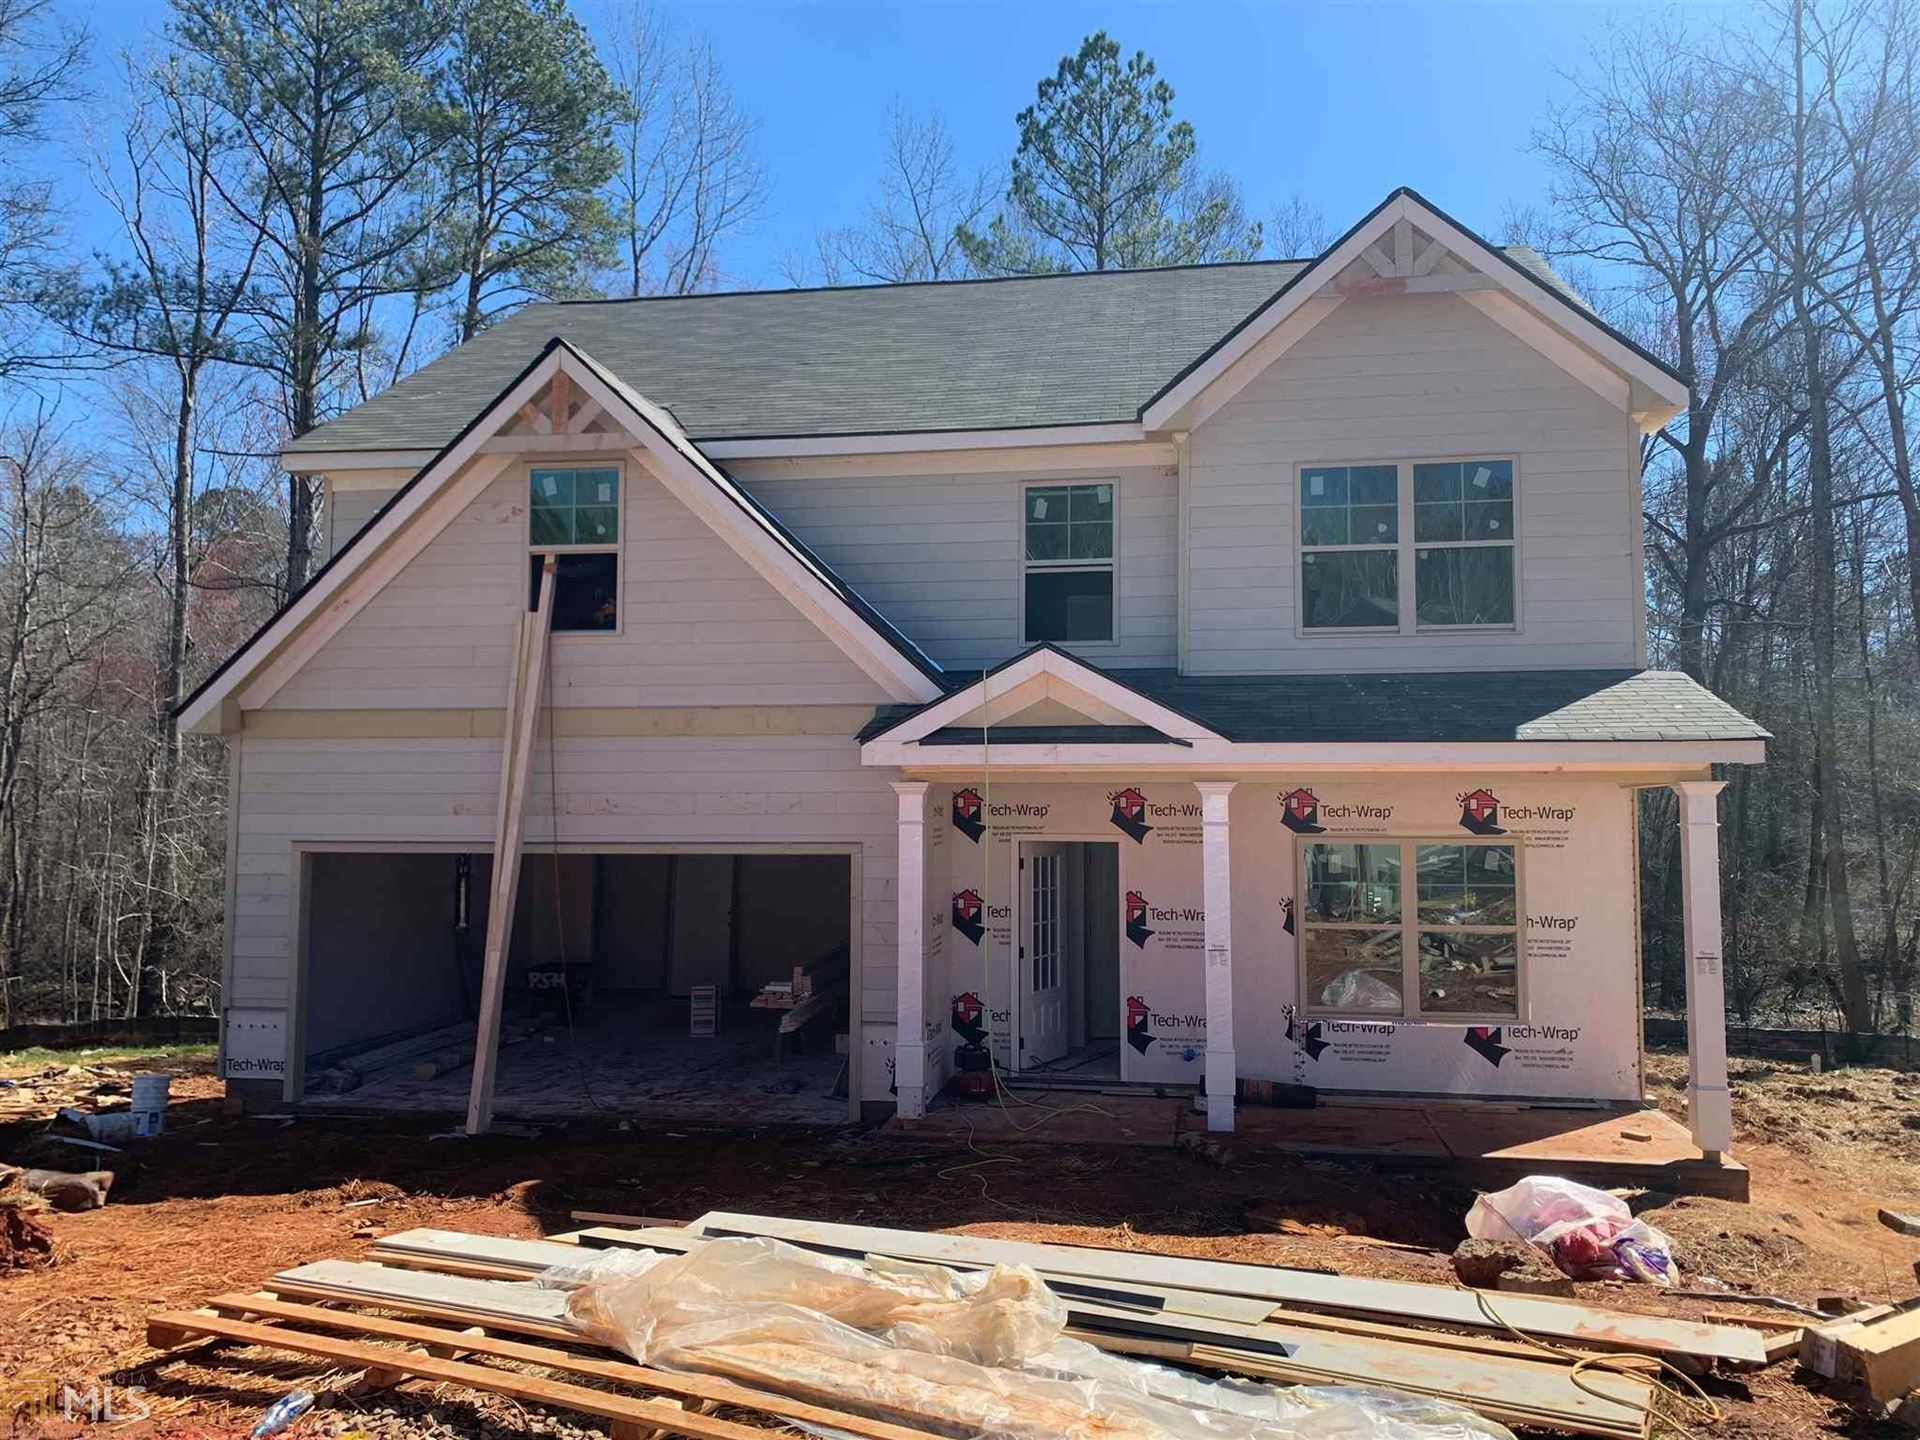 218 Grand Oak Dr, Jefferson, GA 30549 - #: 8938221